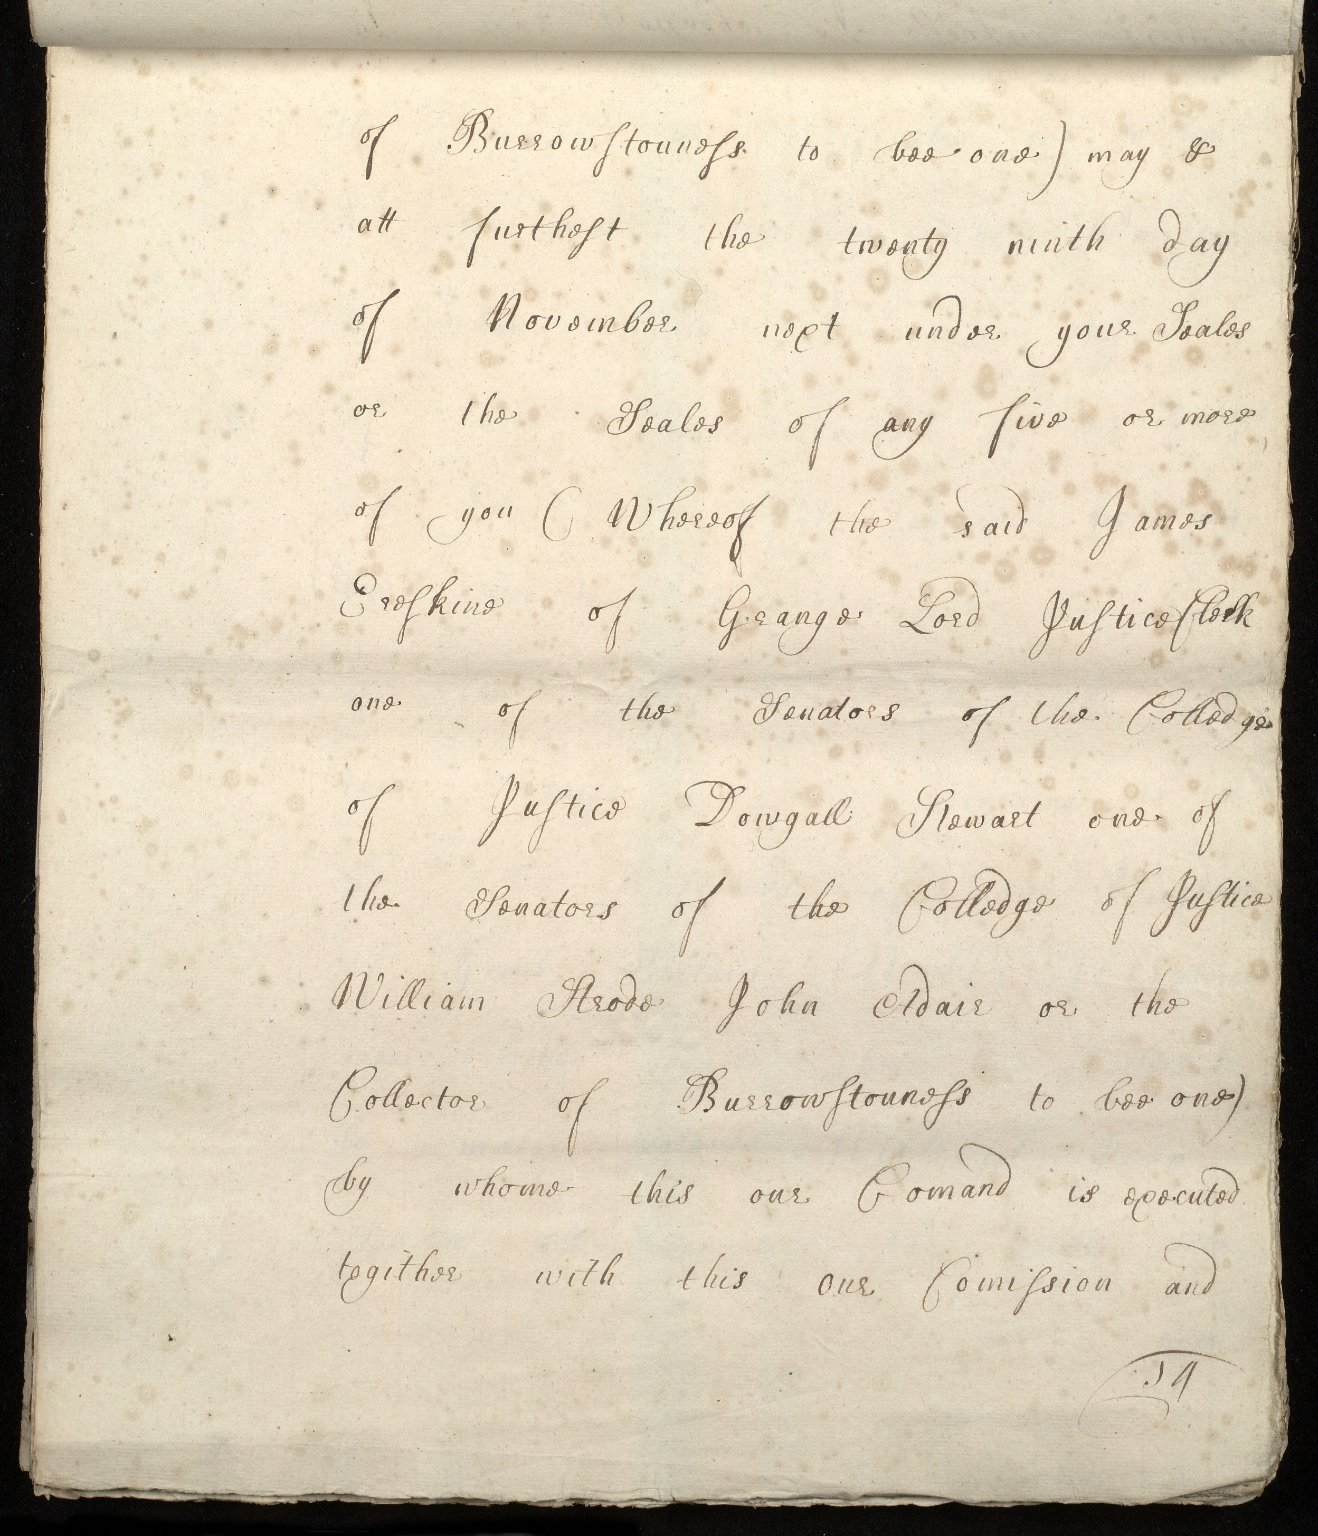 [Commission by Queen Anne to John Adair and others to appoint the town of Borrowstounness (Bo'ness) to be a port and to fix the bounds thereof] [14 of 39]